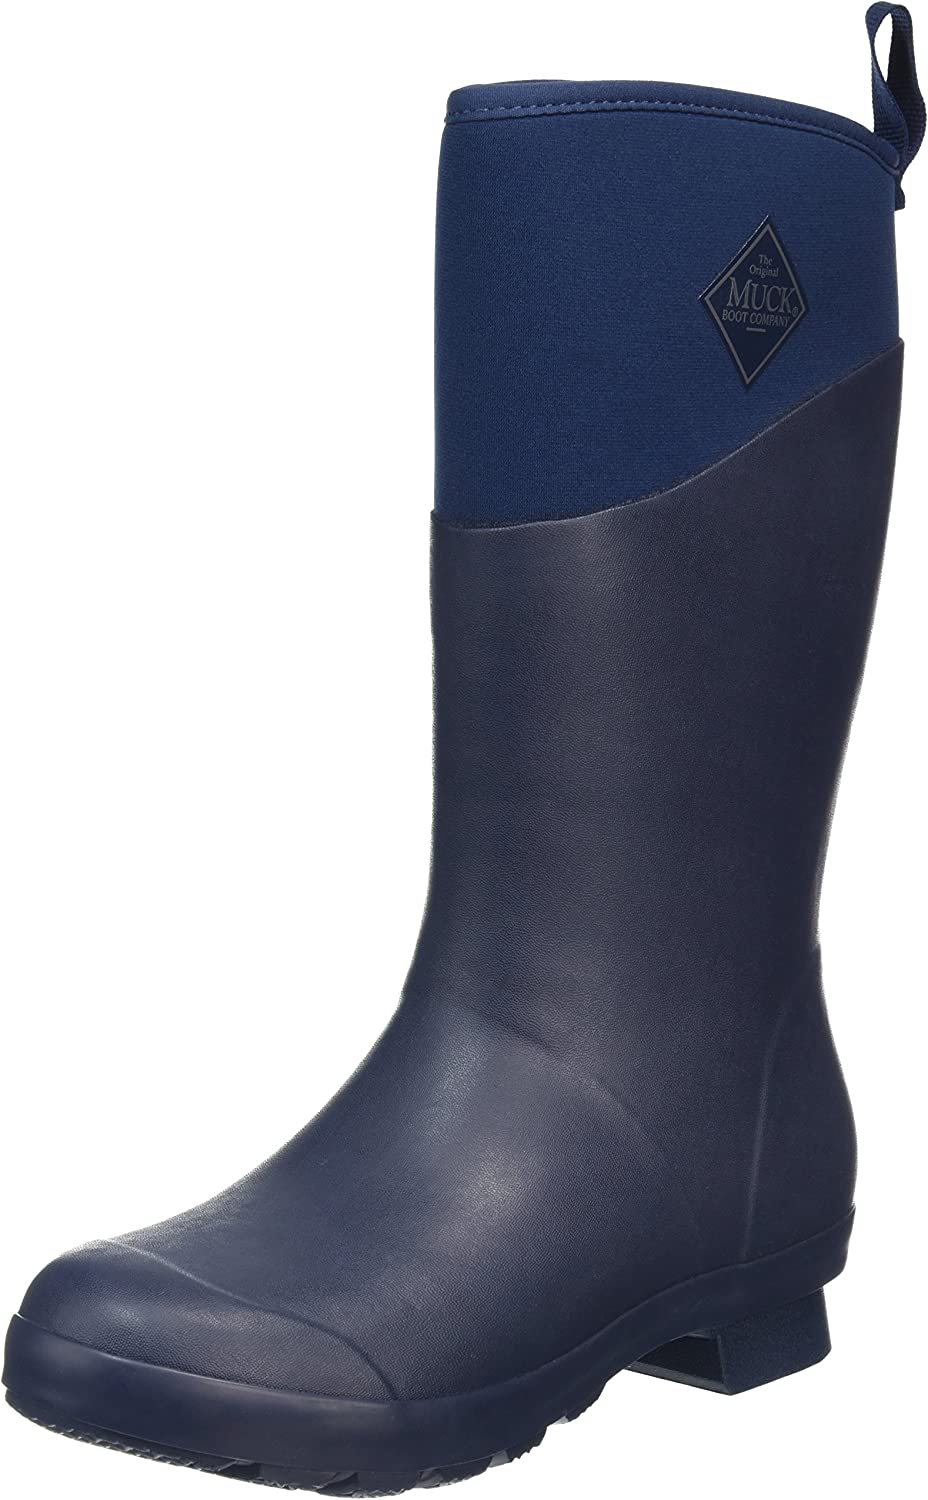 Muck Boot Tremont MID Navy W8